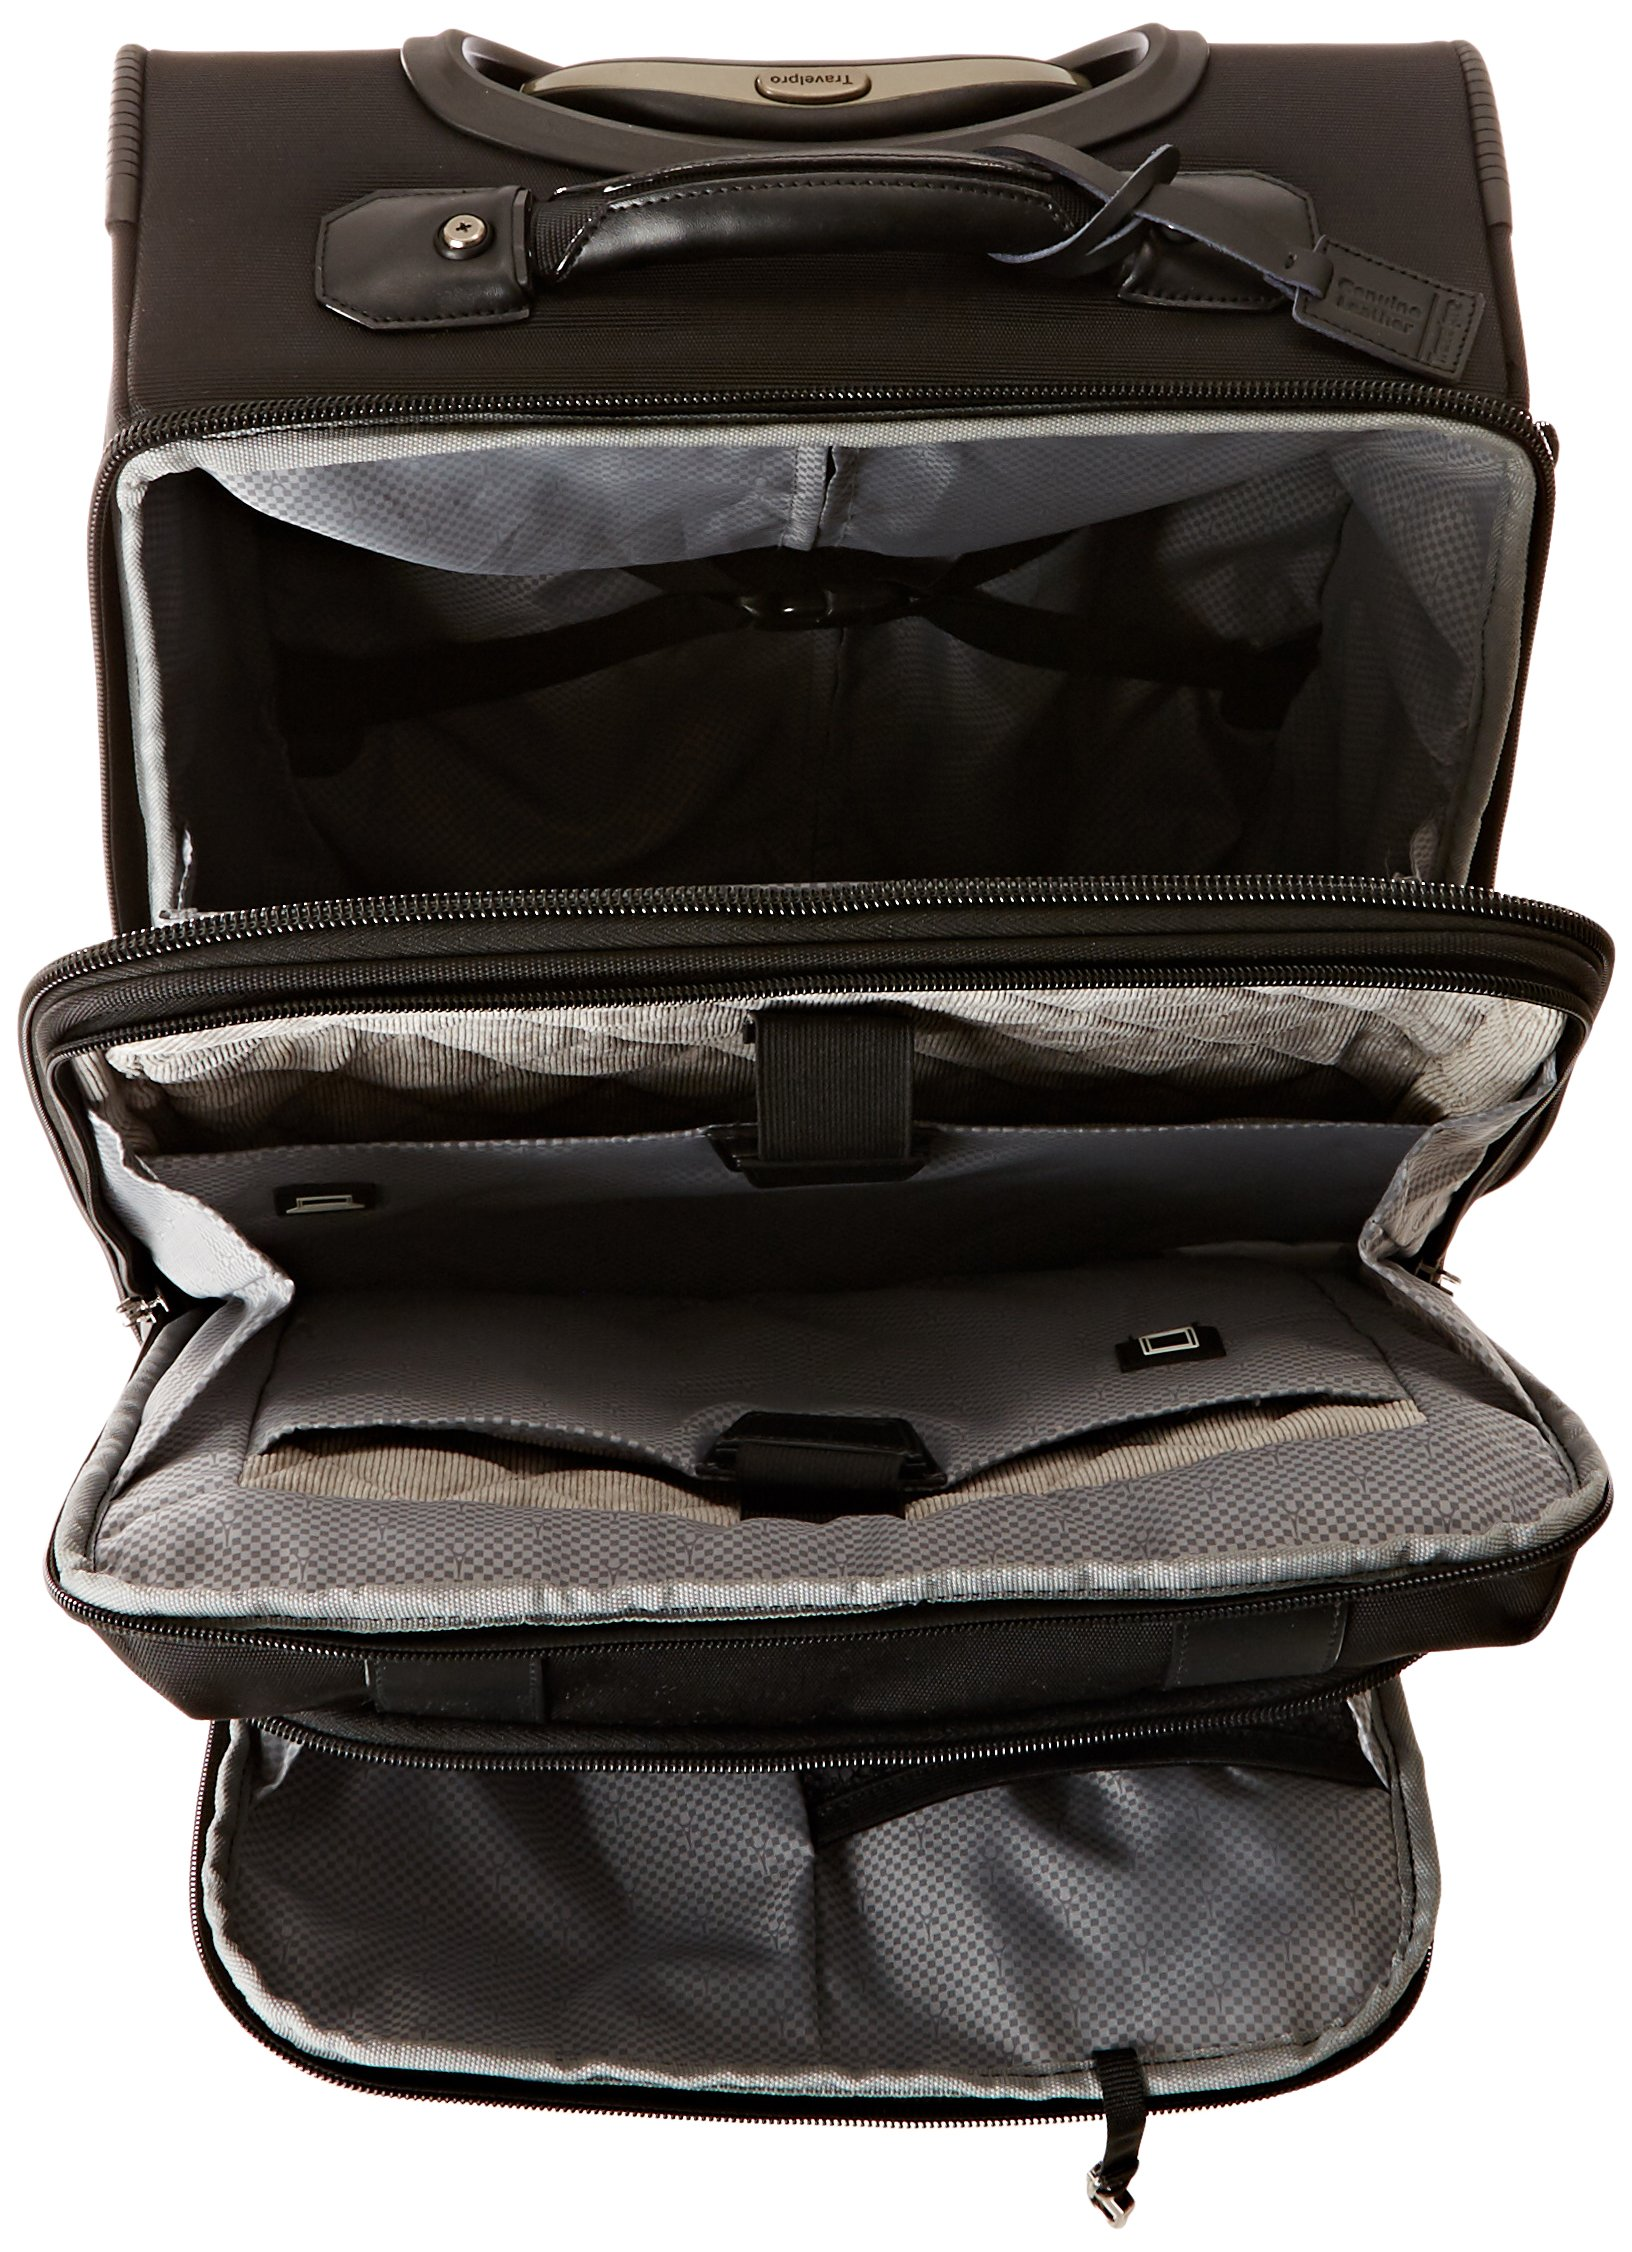 Travelpro Executive Choice Crew 16 Inch Rolling Business Brief, Black, One Size by Travelpro (Image #5)